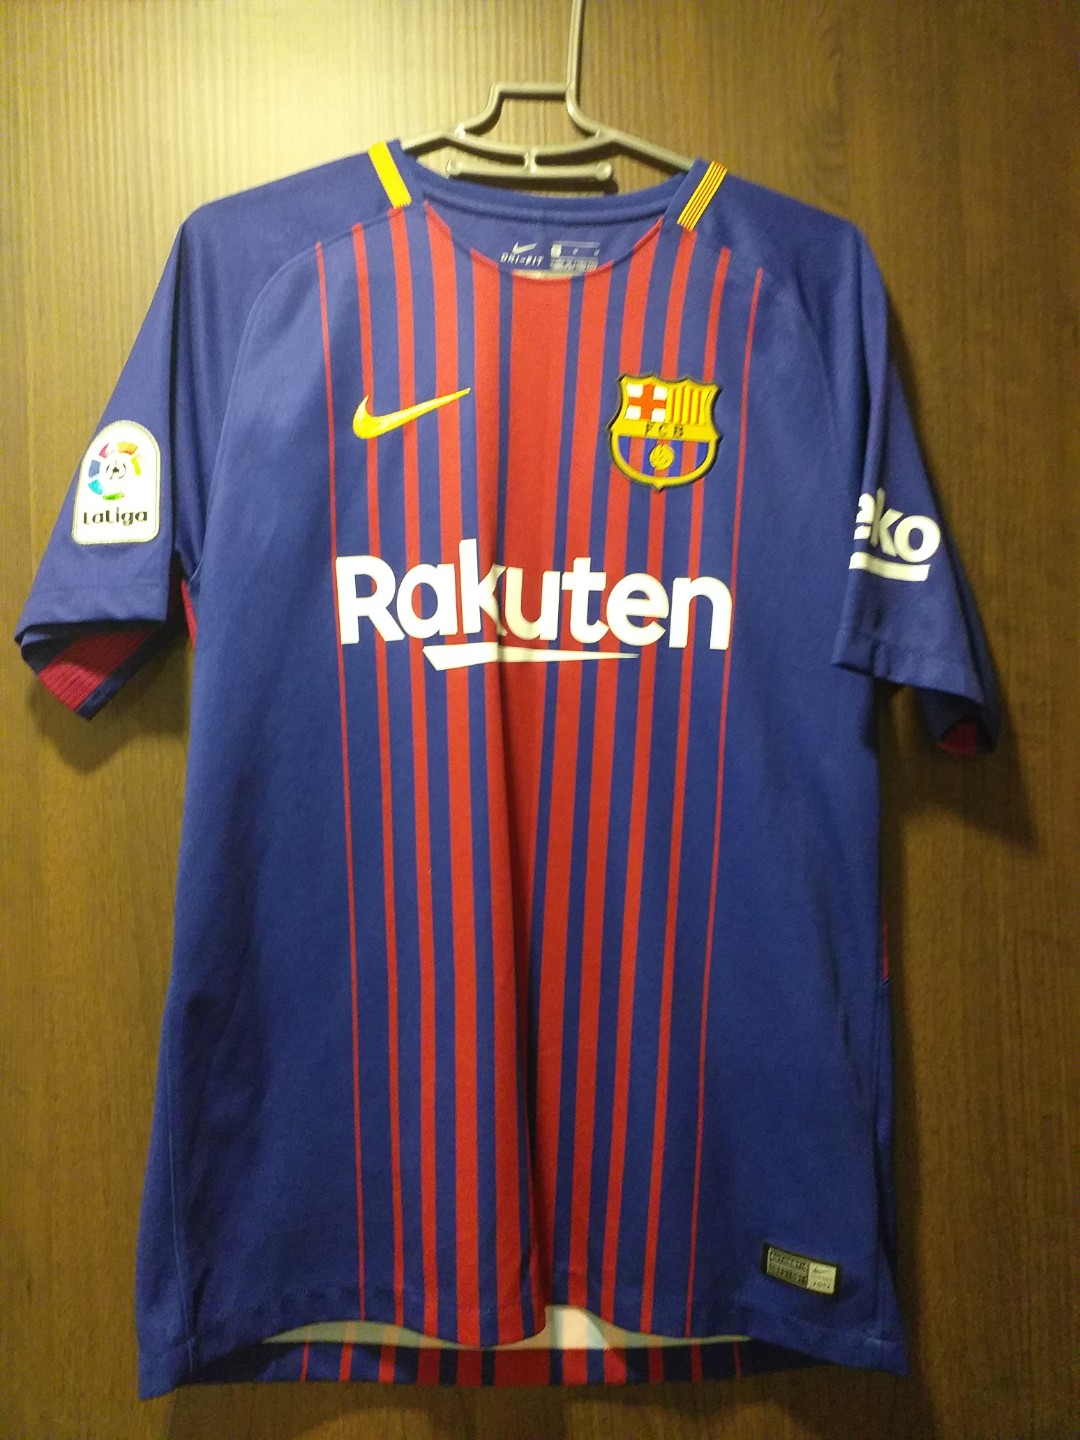 promo code c165d a9f19 Barca jersey with Messi name